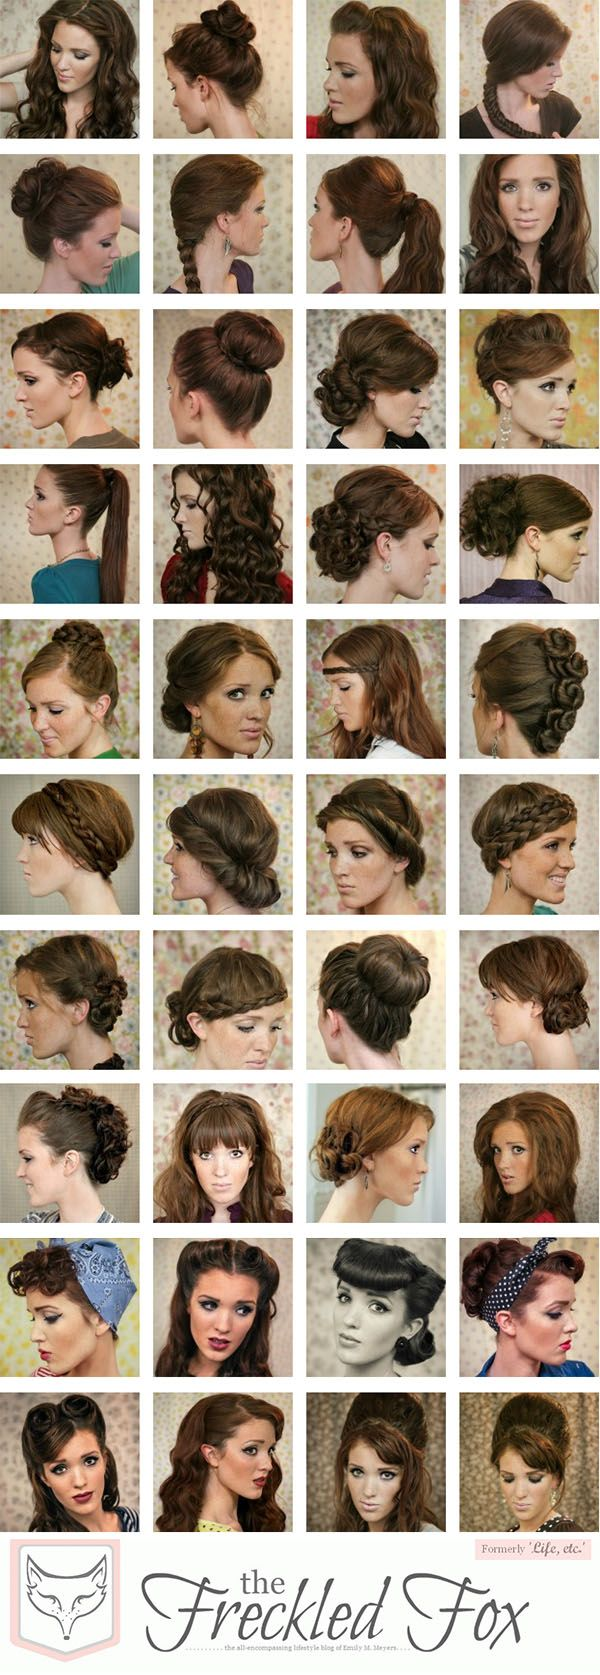 this is an awesome hair inspiration board for school days I don't feel like straightening my hair!!!